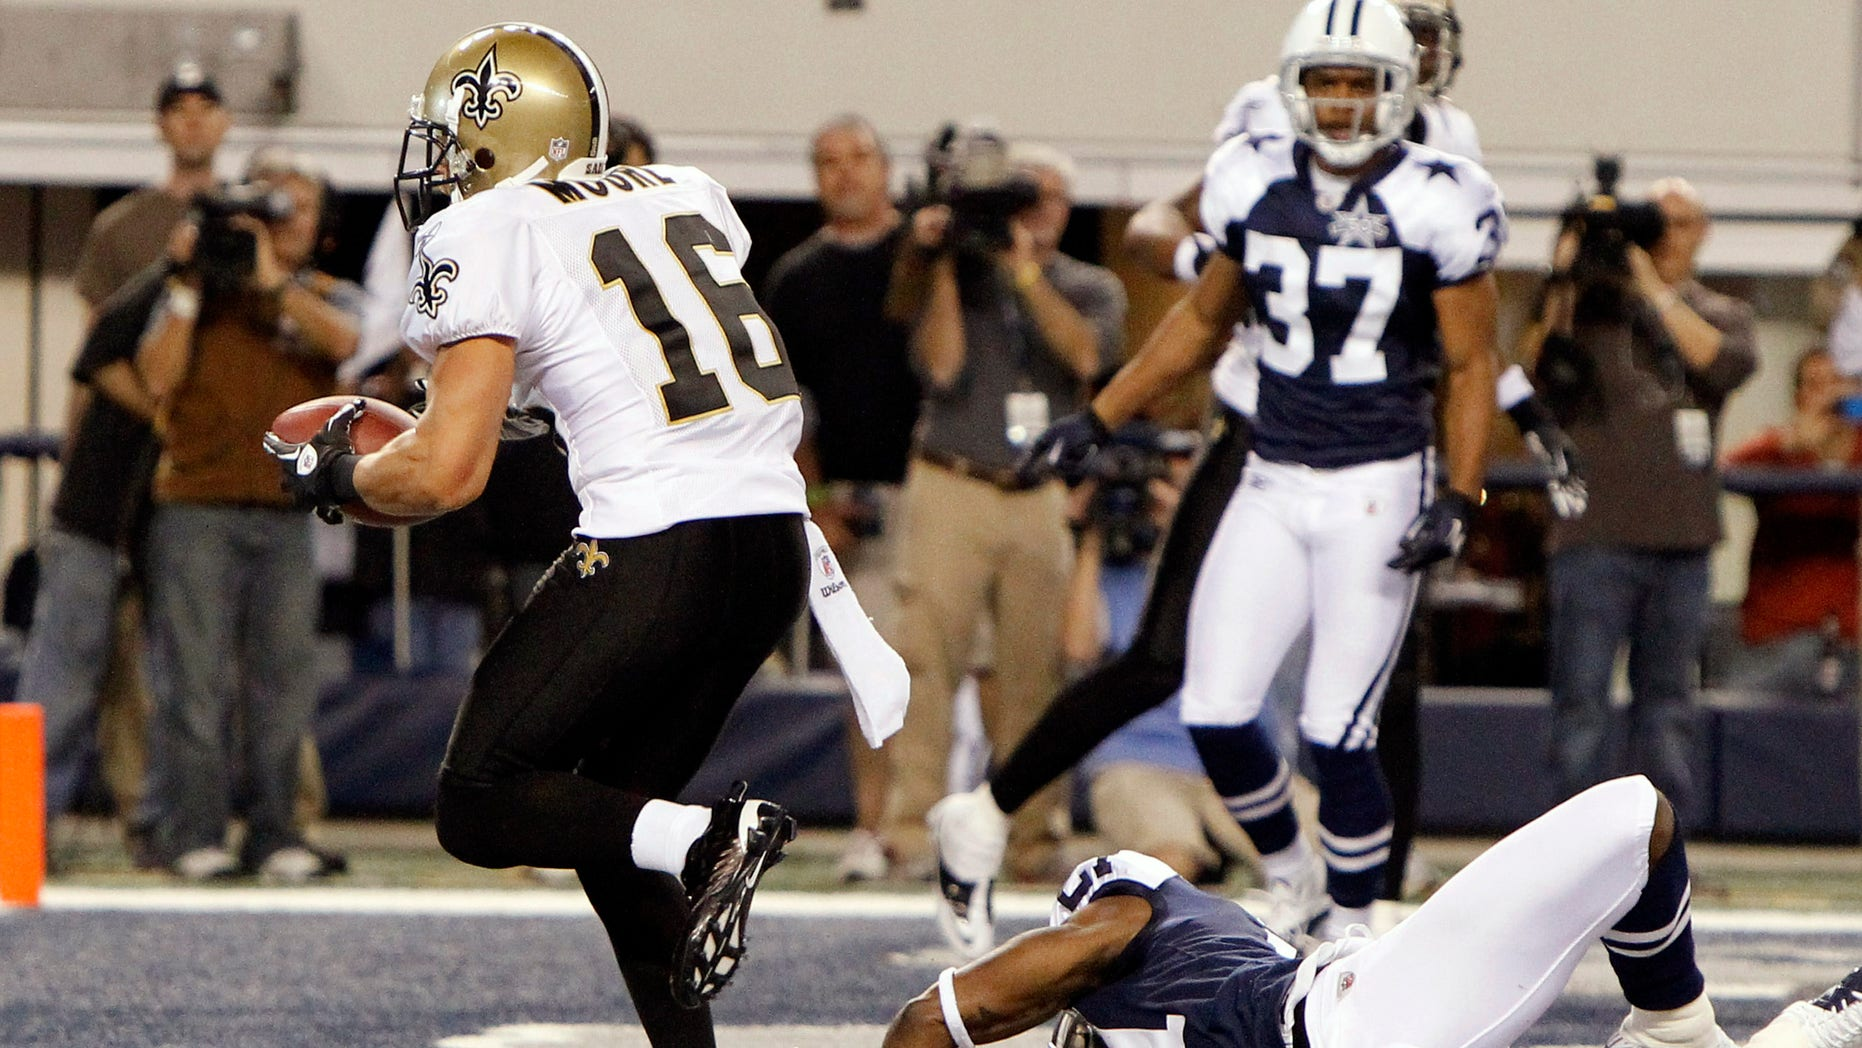 Nov. 25: New Orleans Saints wide receiver Lance Moore (16) scores the game-winning touchdown against Dallas Cowboys cornerback Mike Jenkins (21) as Bryan McCann (37) looks on during the fourth-quarter of the NFL football game in Arlington, Texas.